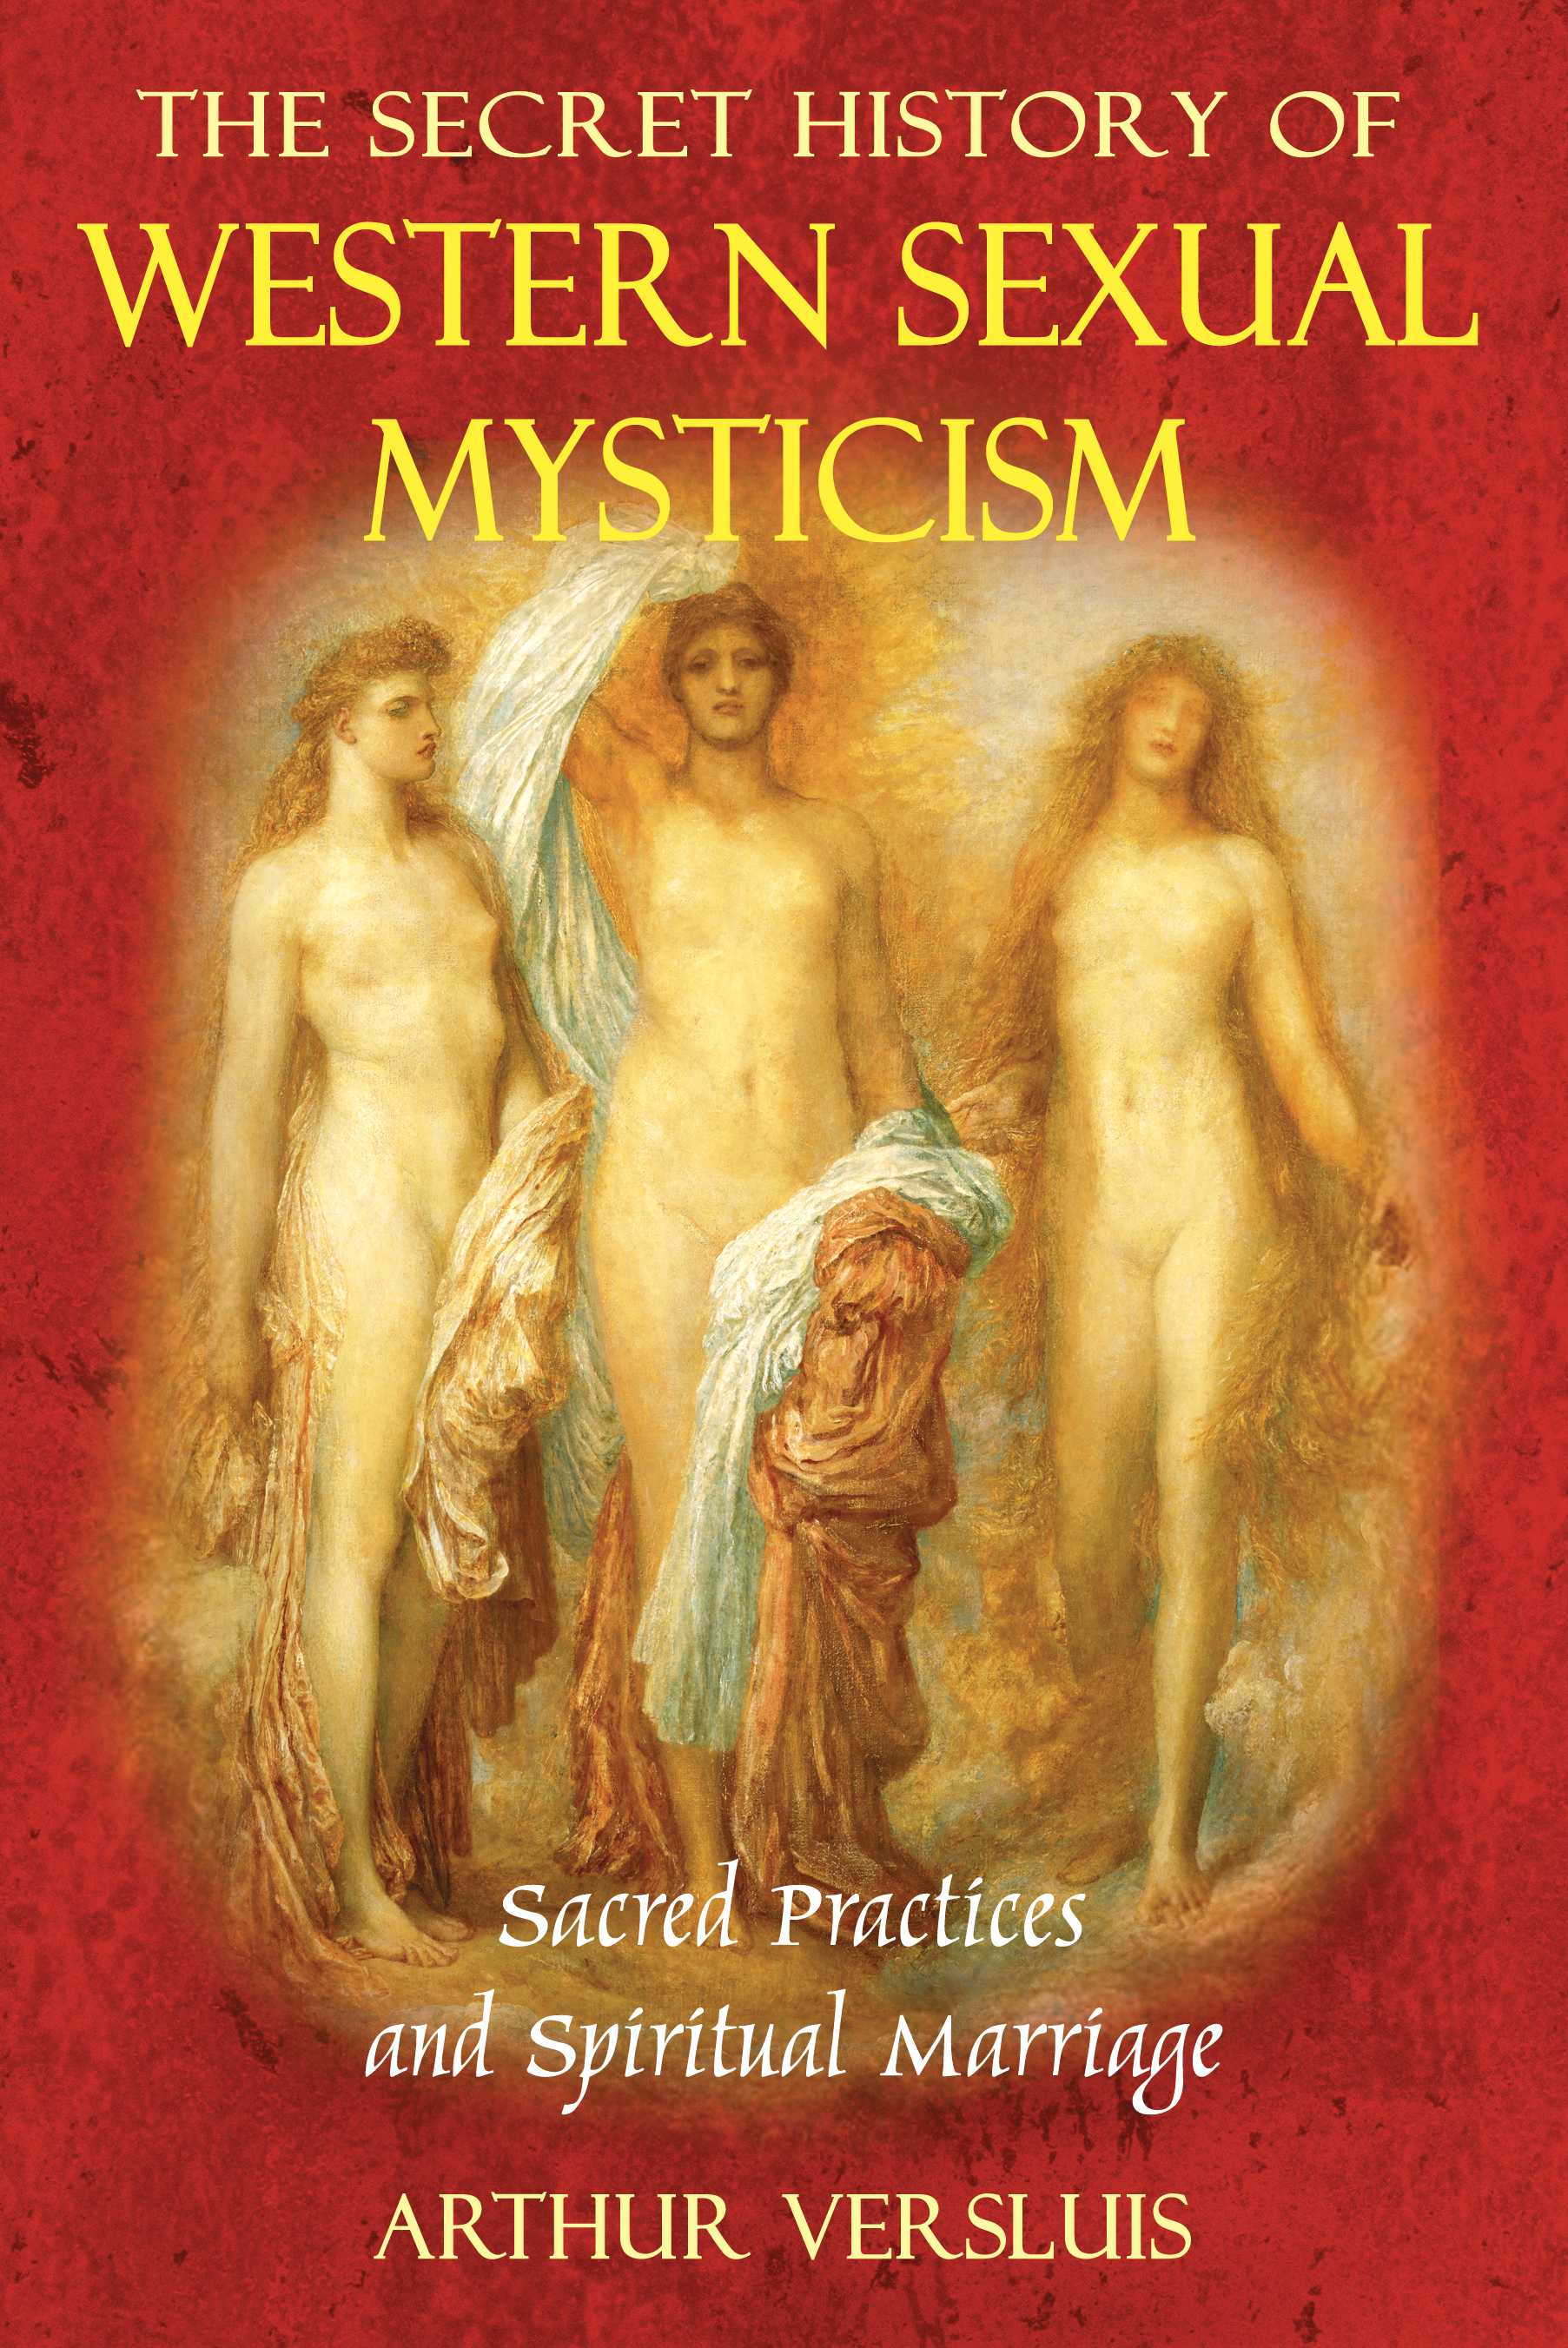 The-secret-history-of-western-sexual-mysticism-9781594772122_hr